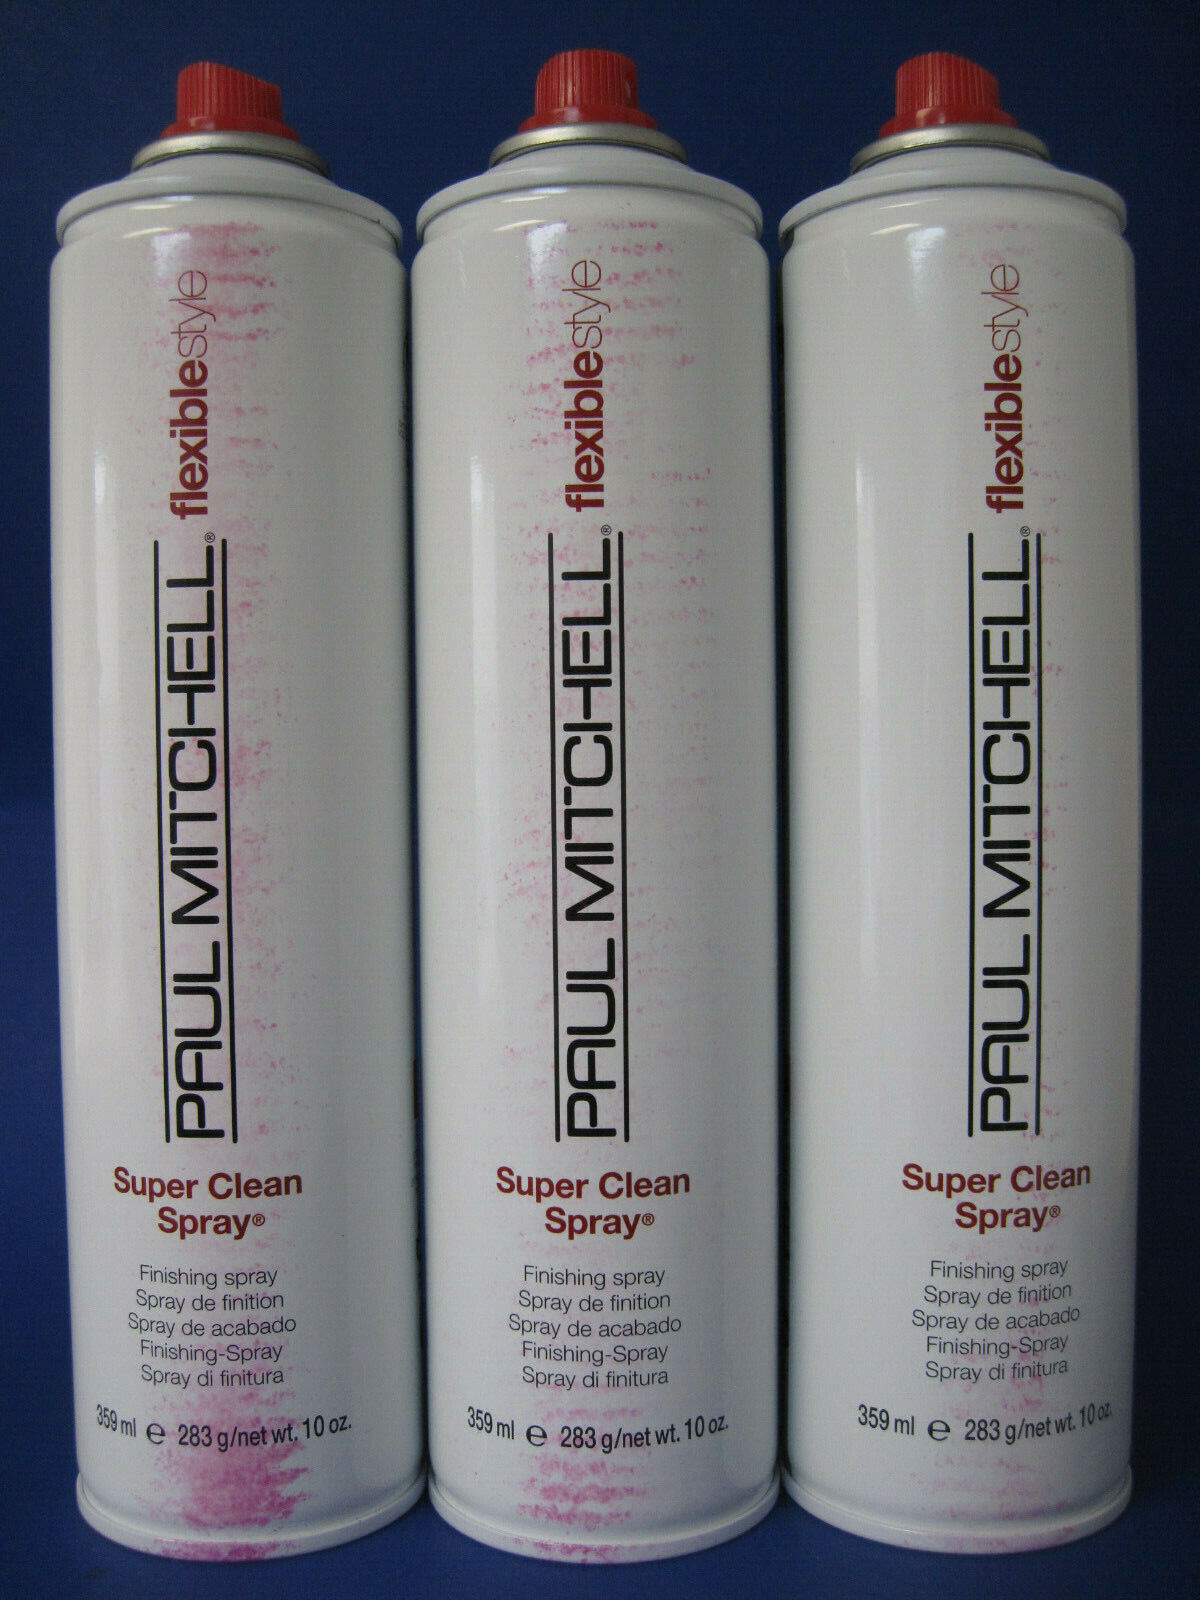 PAUL MITCHELL SUPER CLEAN SPRAY HAIRSPRAY 10 OZ Lot of 3